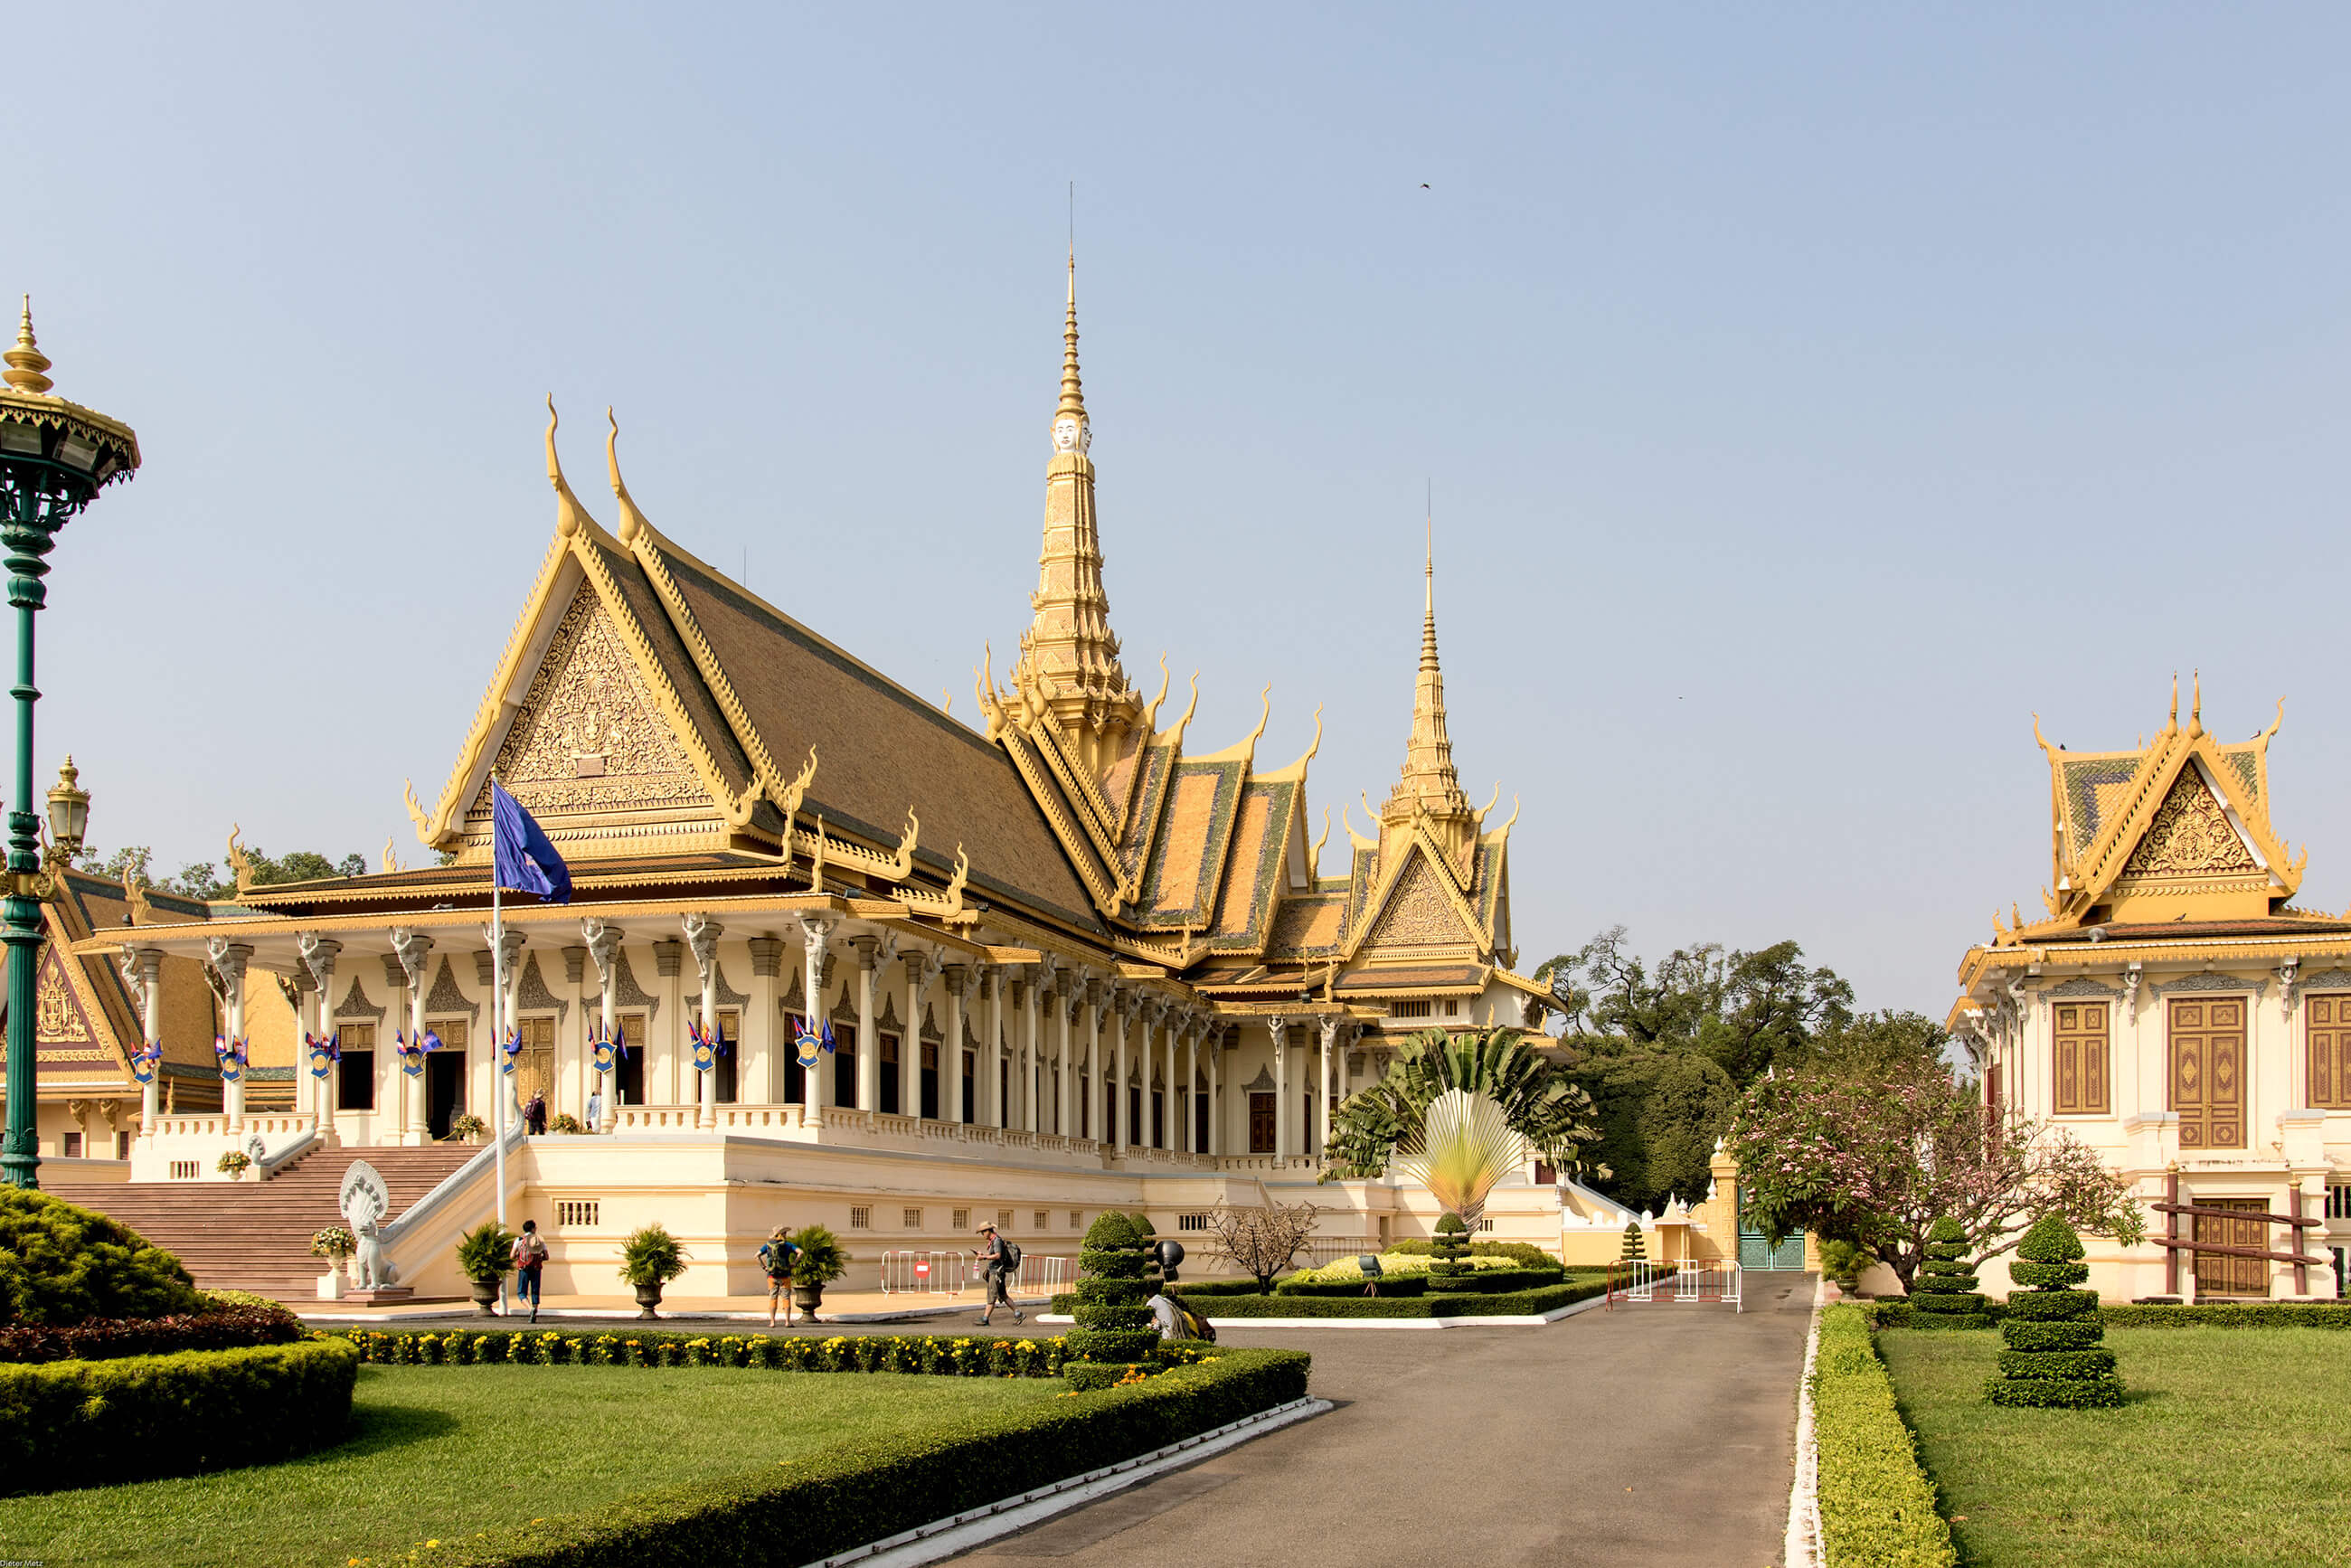 https://bubo.sk/uploads/galleries/7382/pxb_kambodza_phnom-penh-1371236.jpg